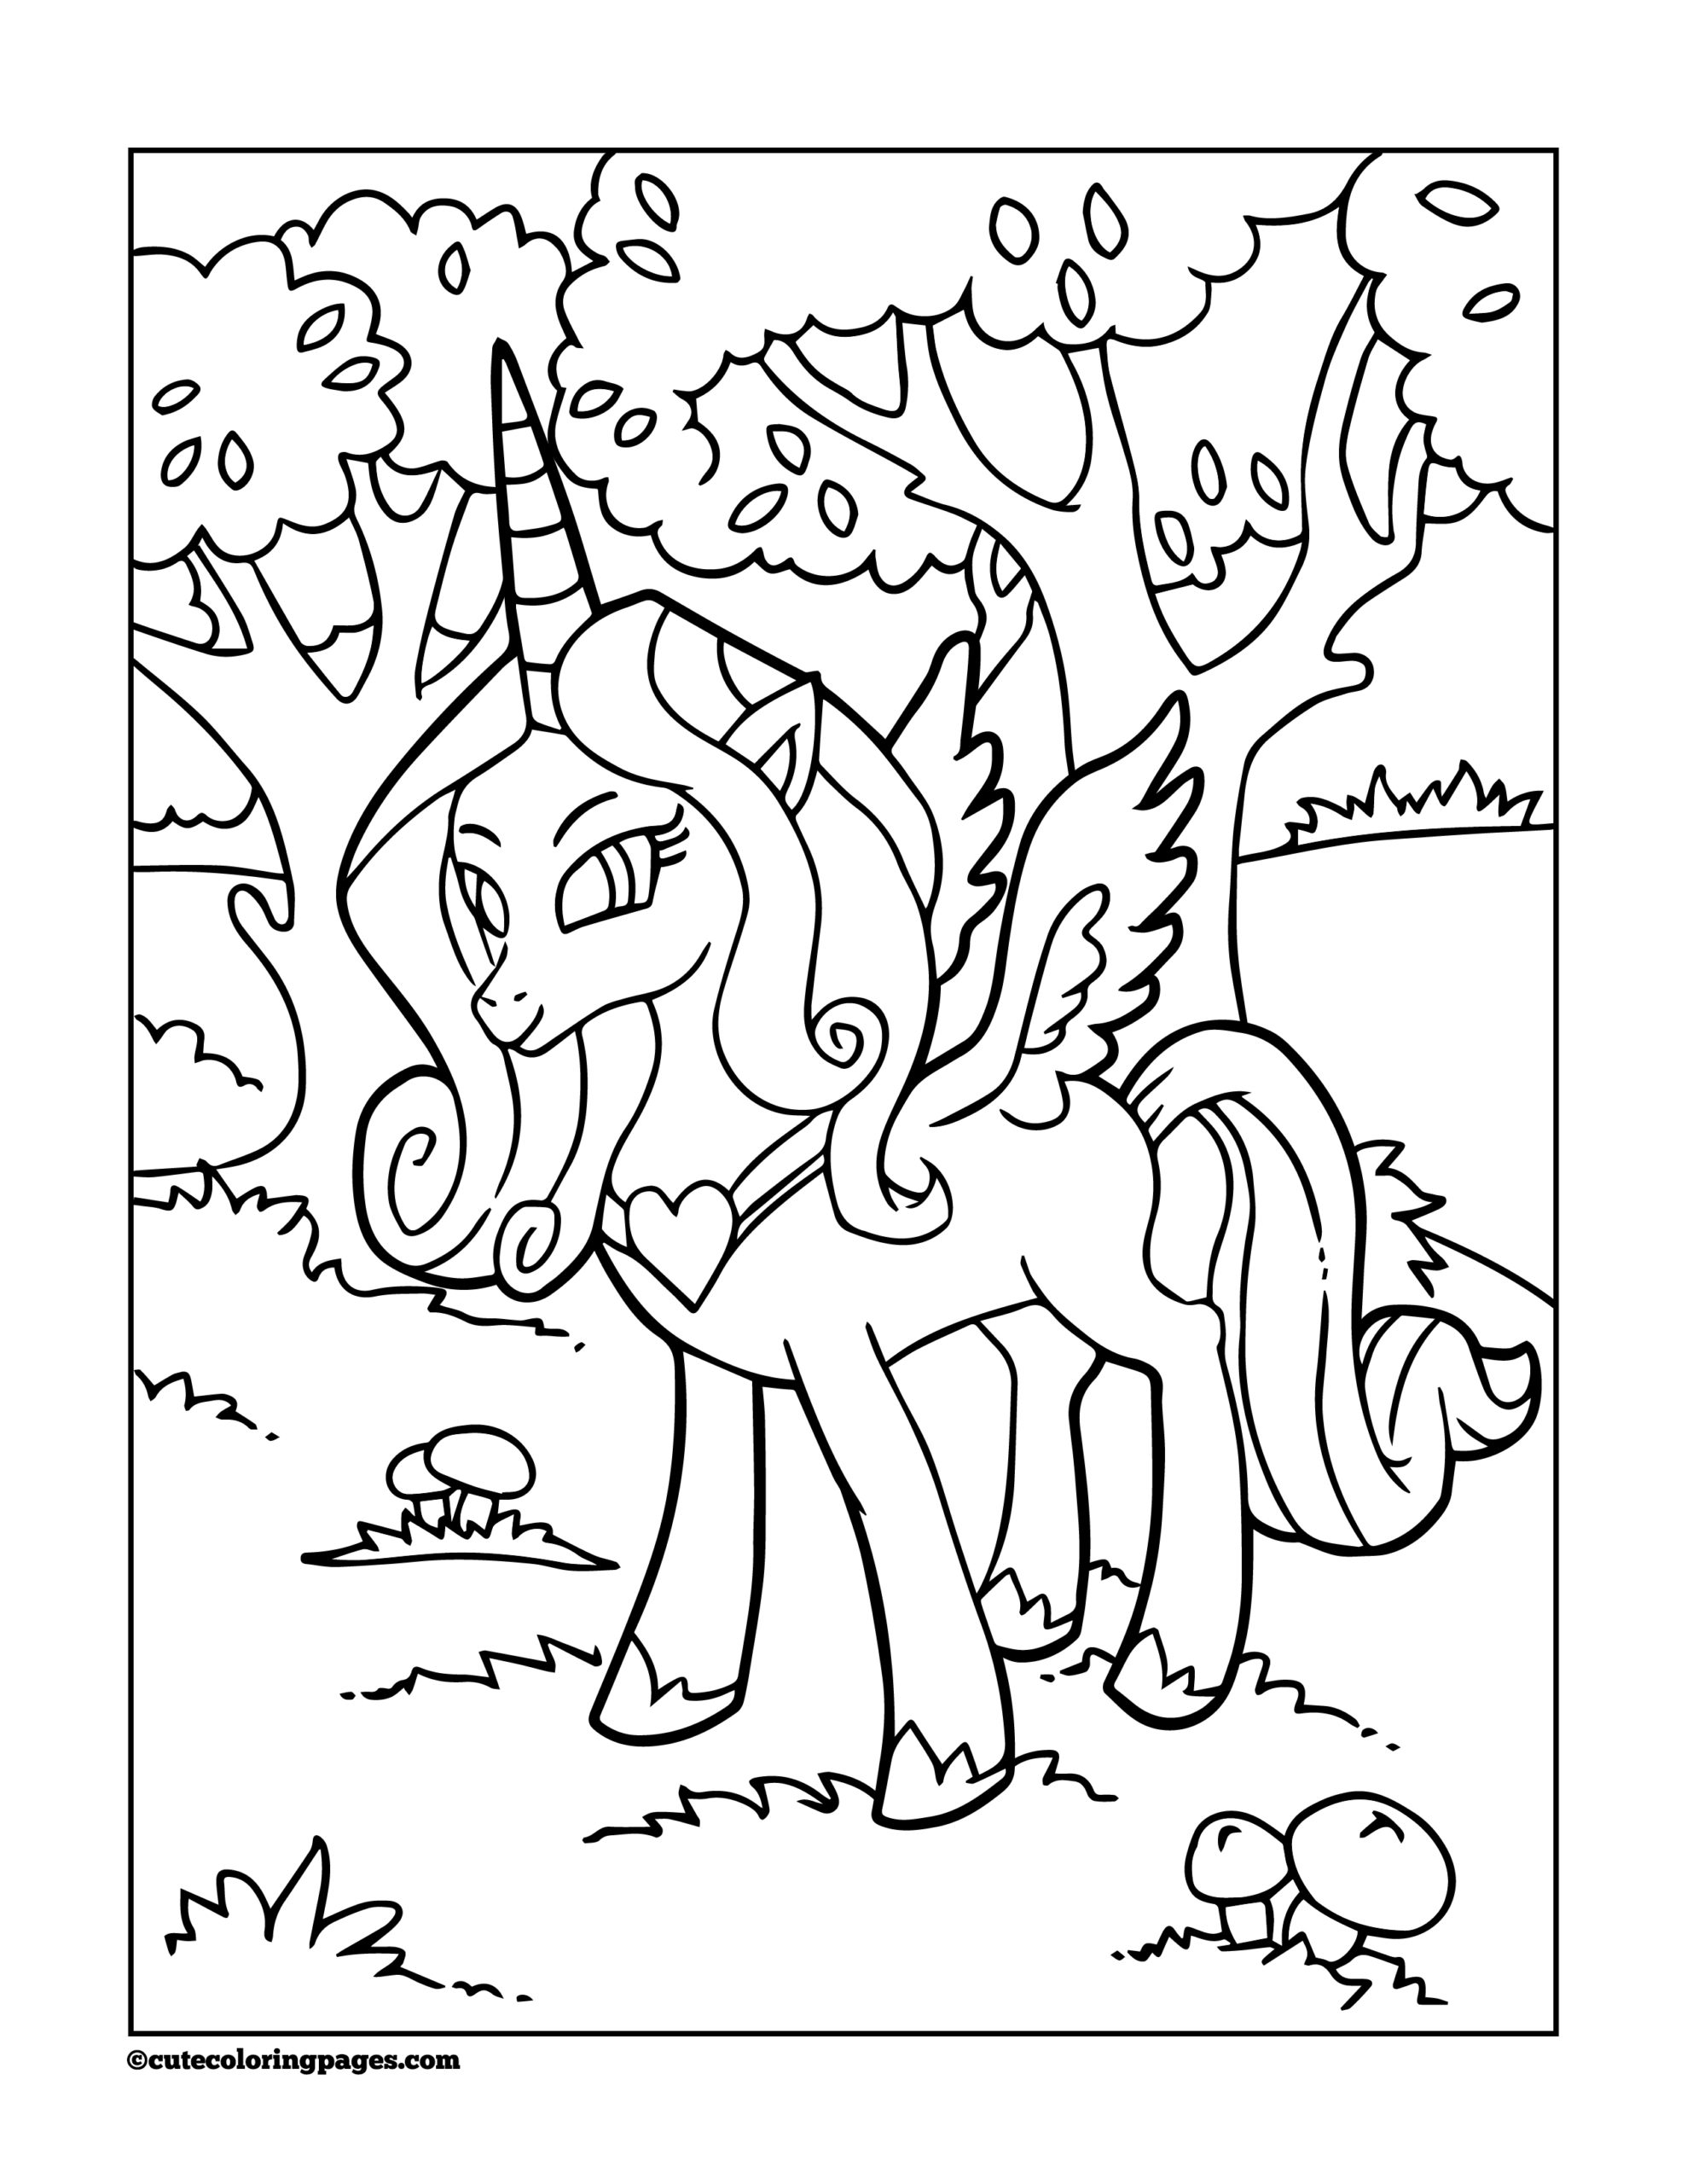 Coloring Pages : Drawn Free Coloring For Kids And Adults Fairies ...